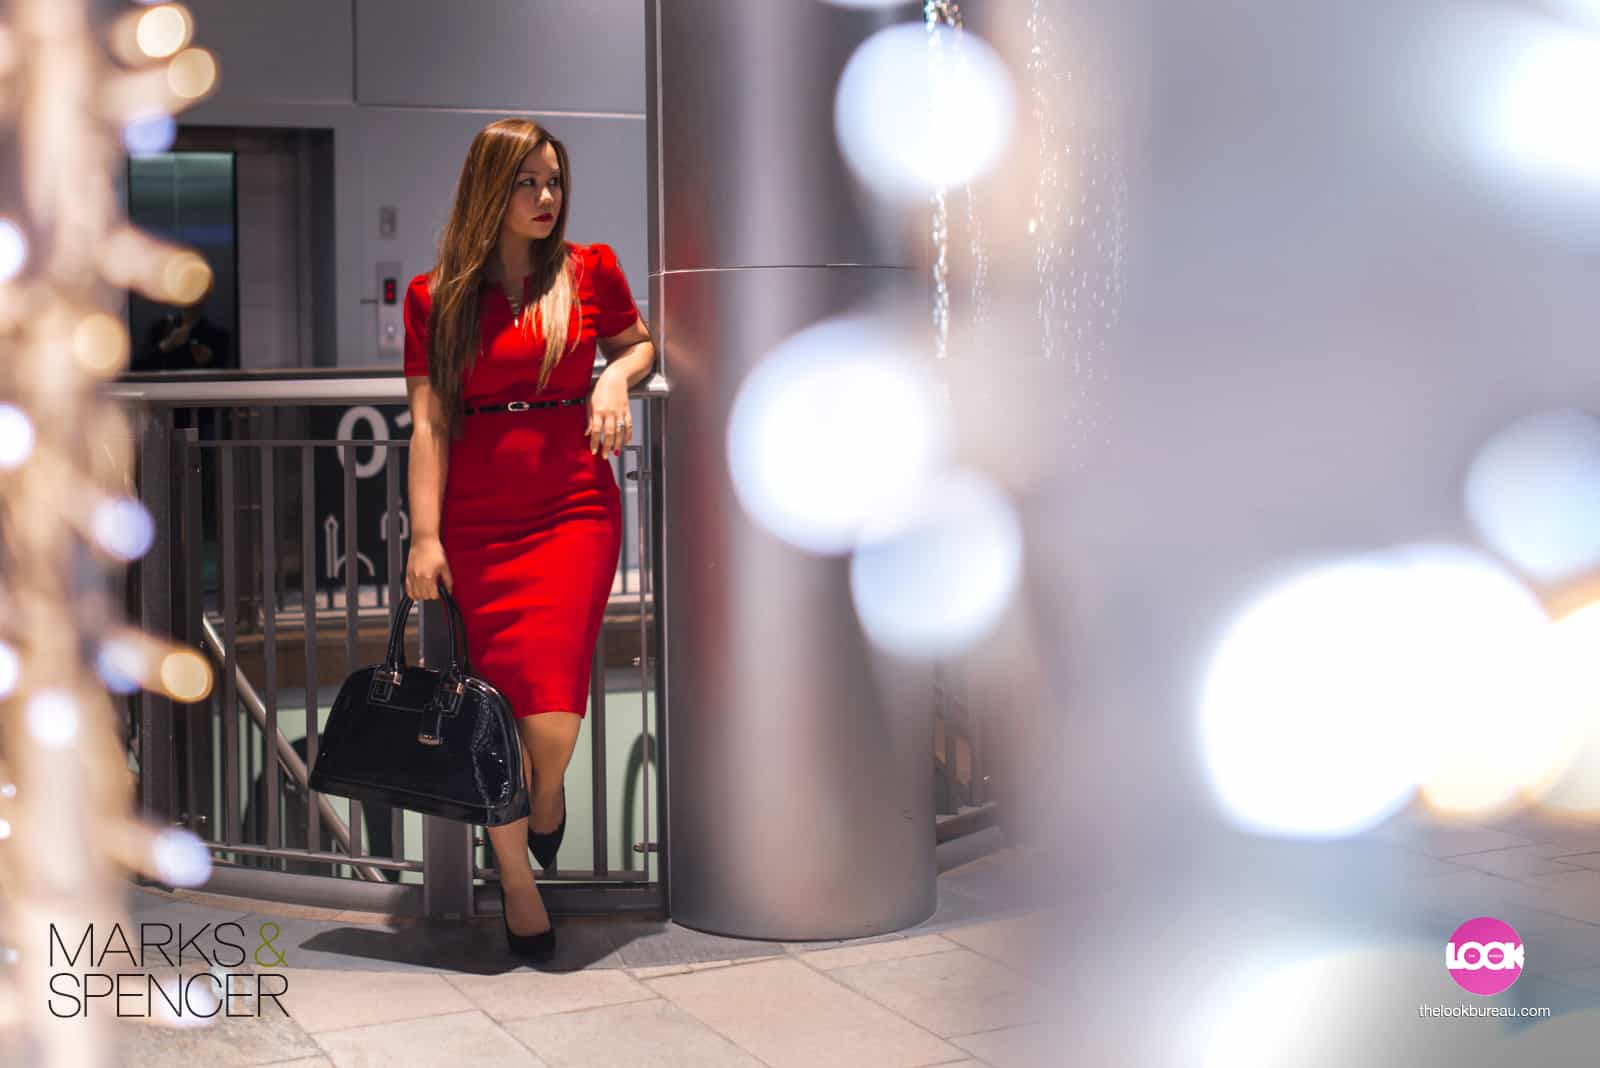 Marks & Spencer Night Look Red Dress